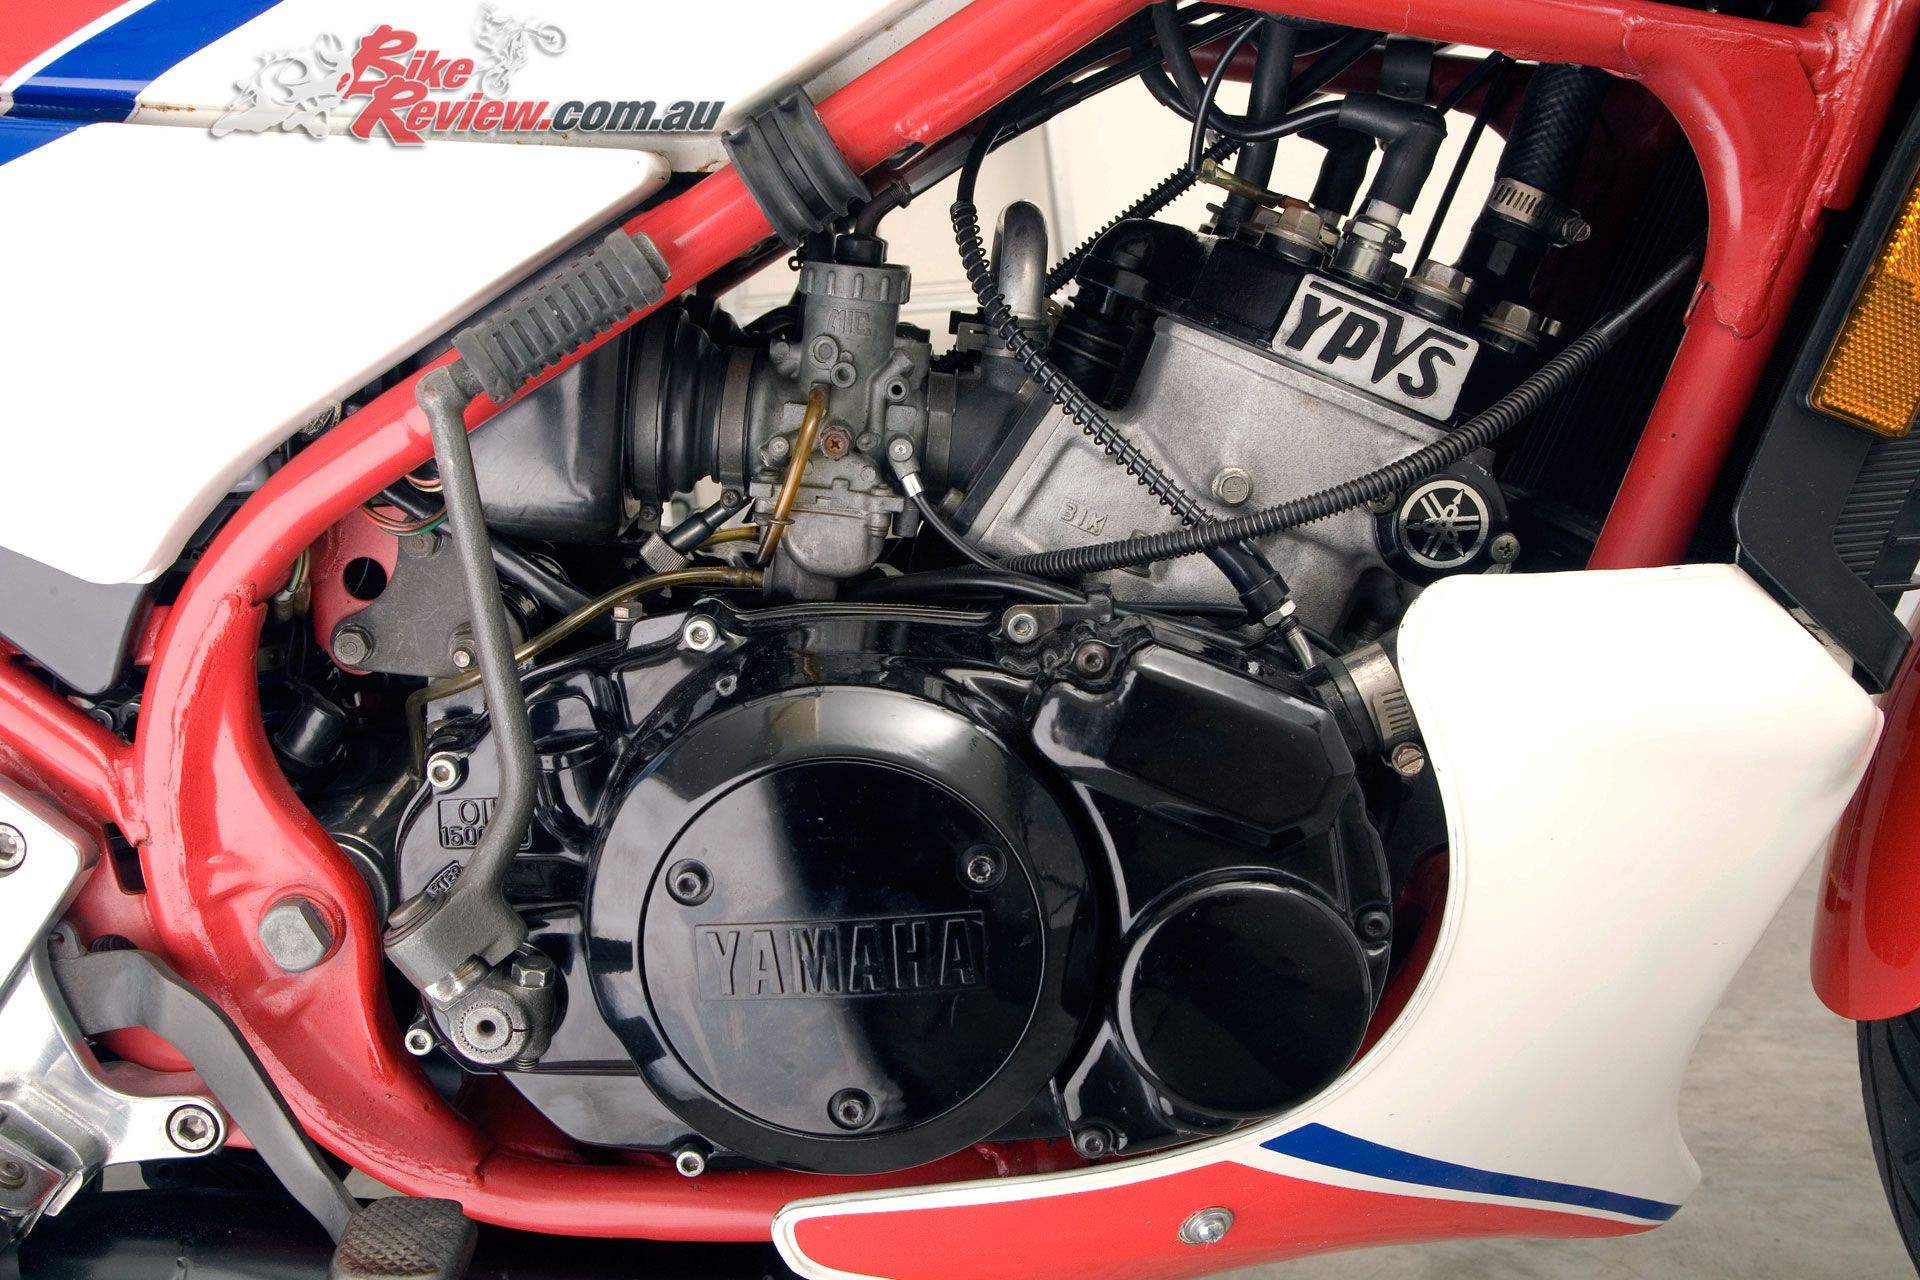 Significantly the RZ350 included Yamaha's 'Yamaha Power Valve System' or YPVS